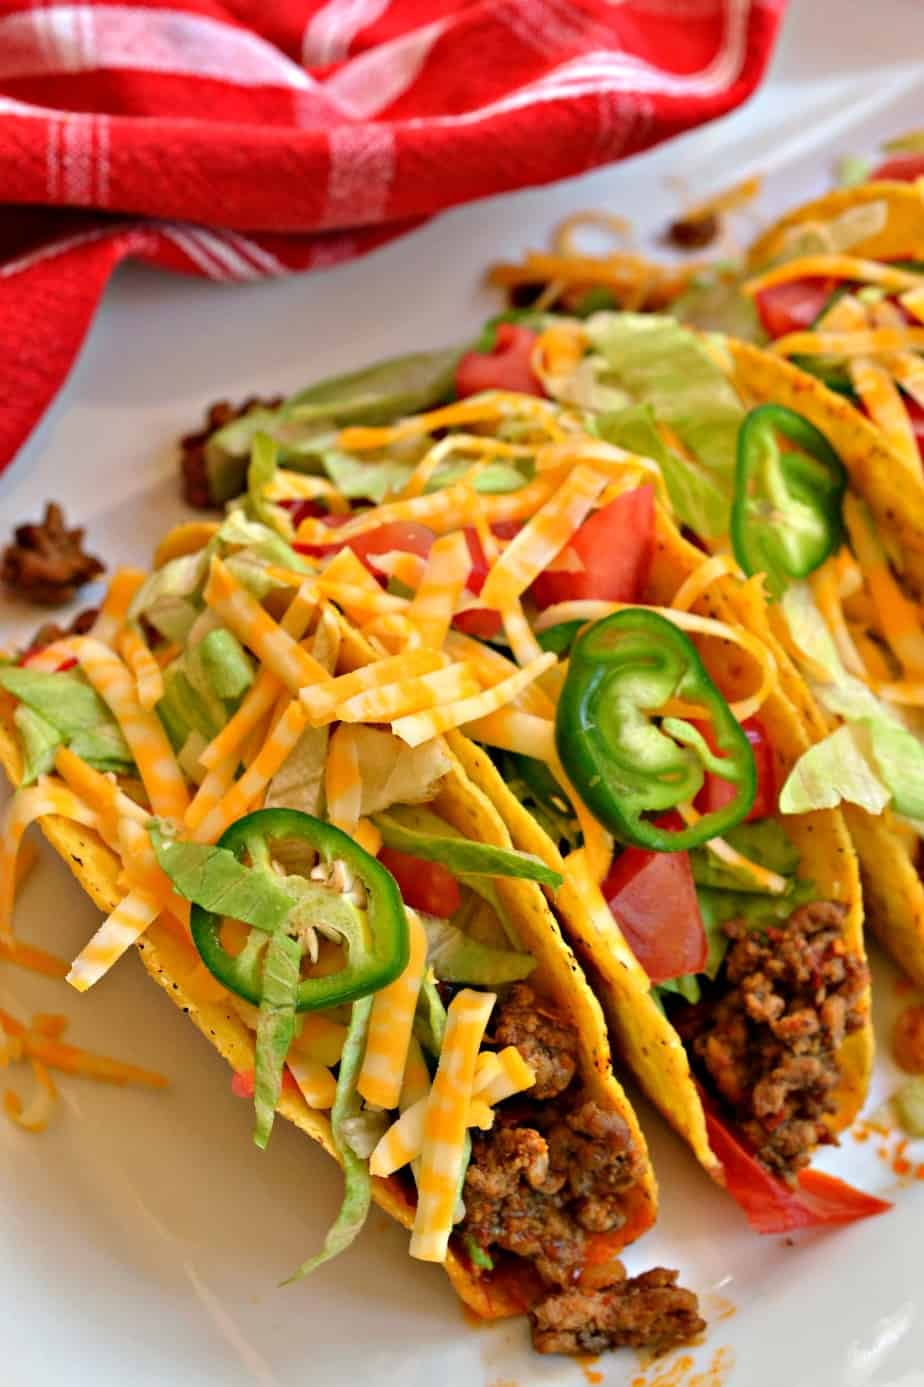 These ground beef tacos are delicious, easy and quick.